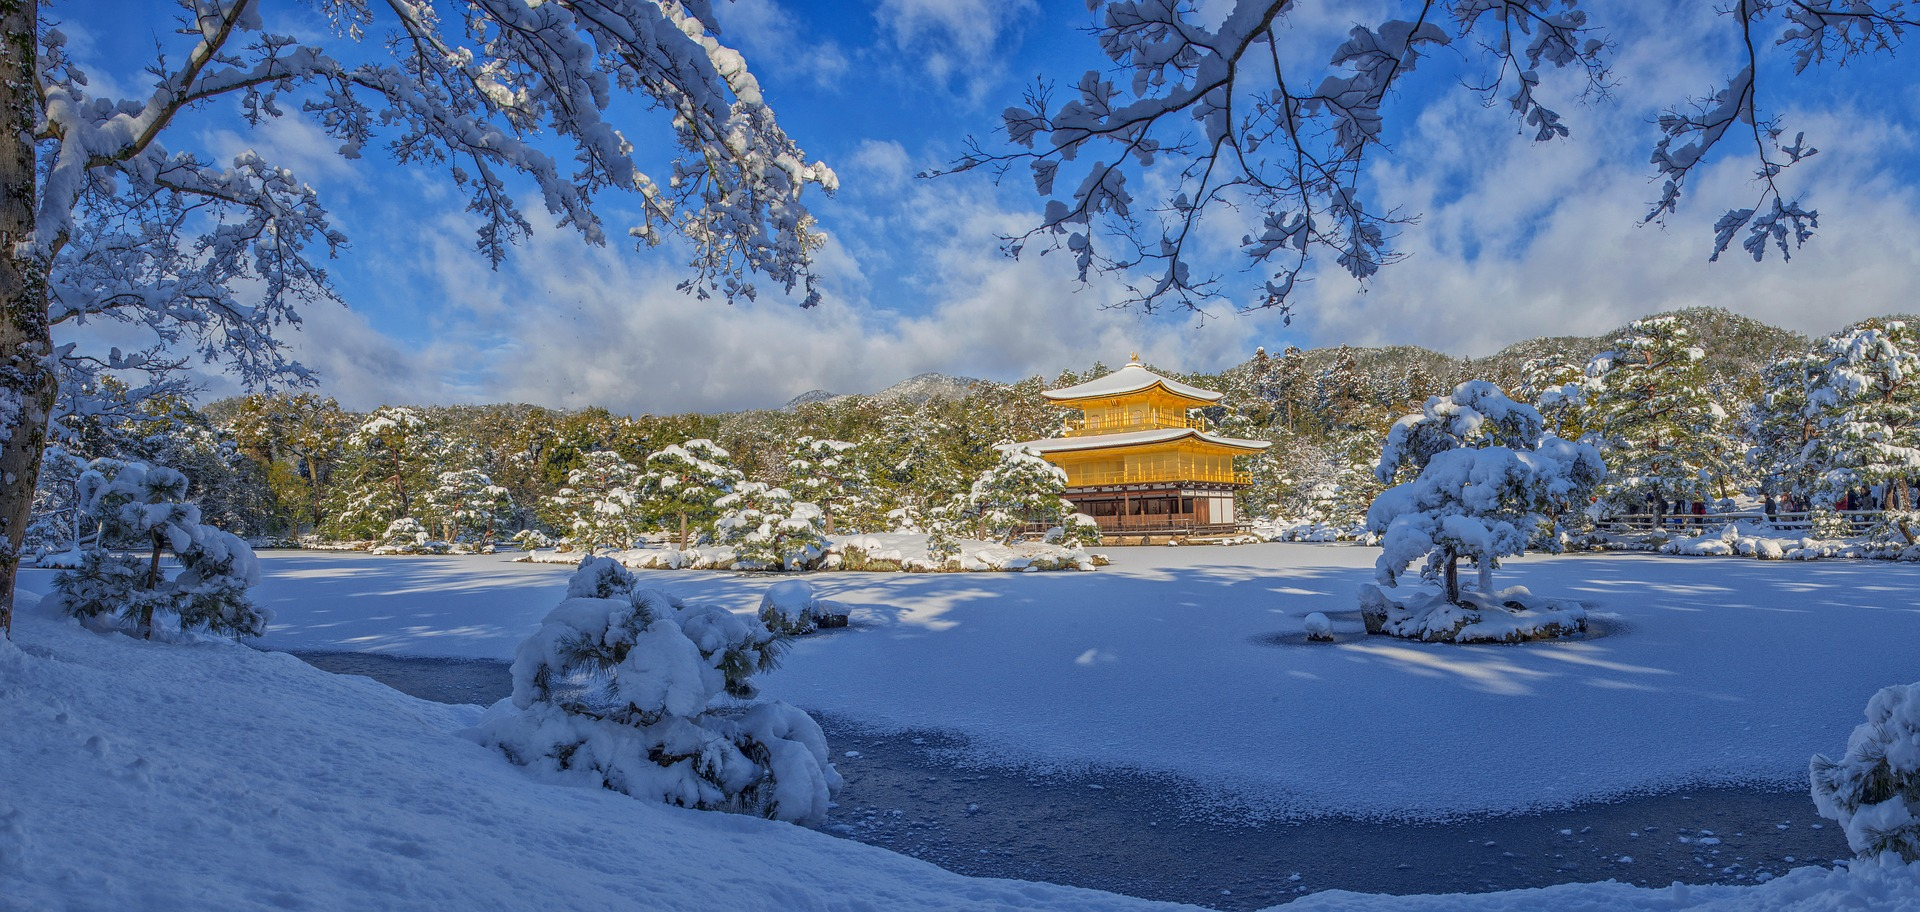 The spectacular Golden Pavilion in Kyoto, Japan